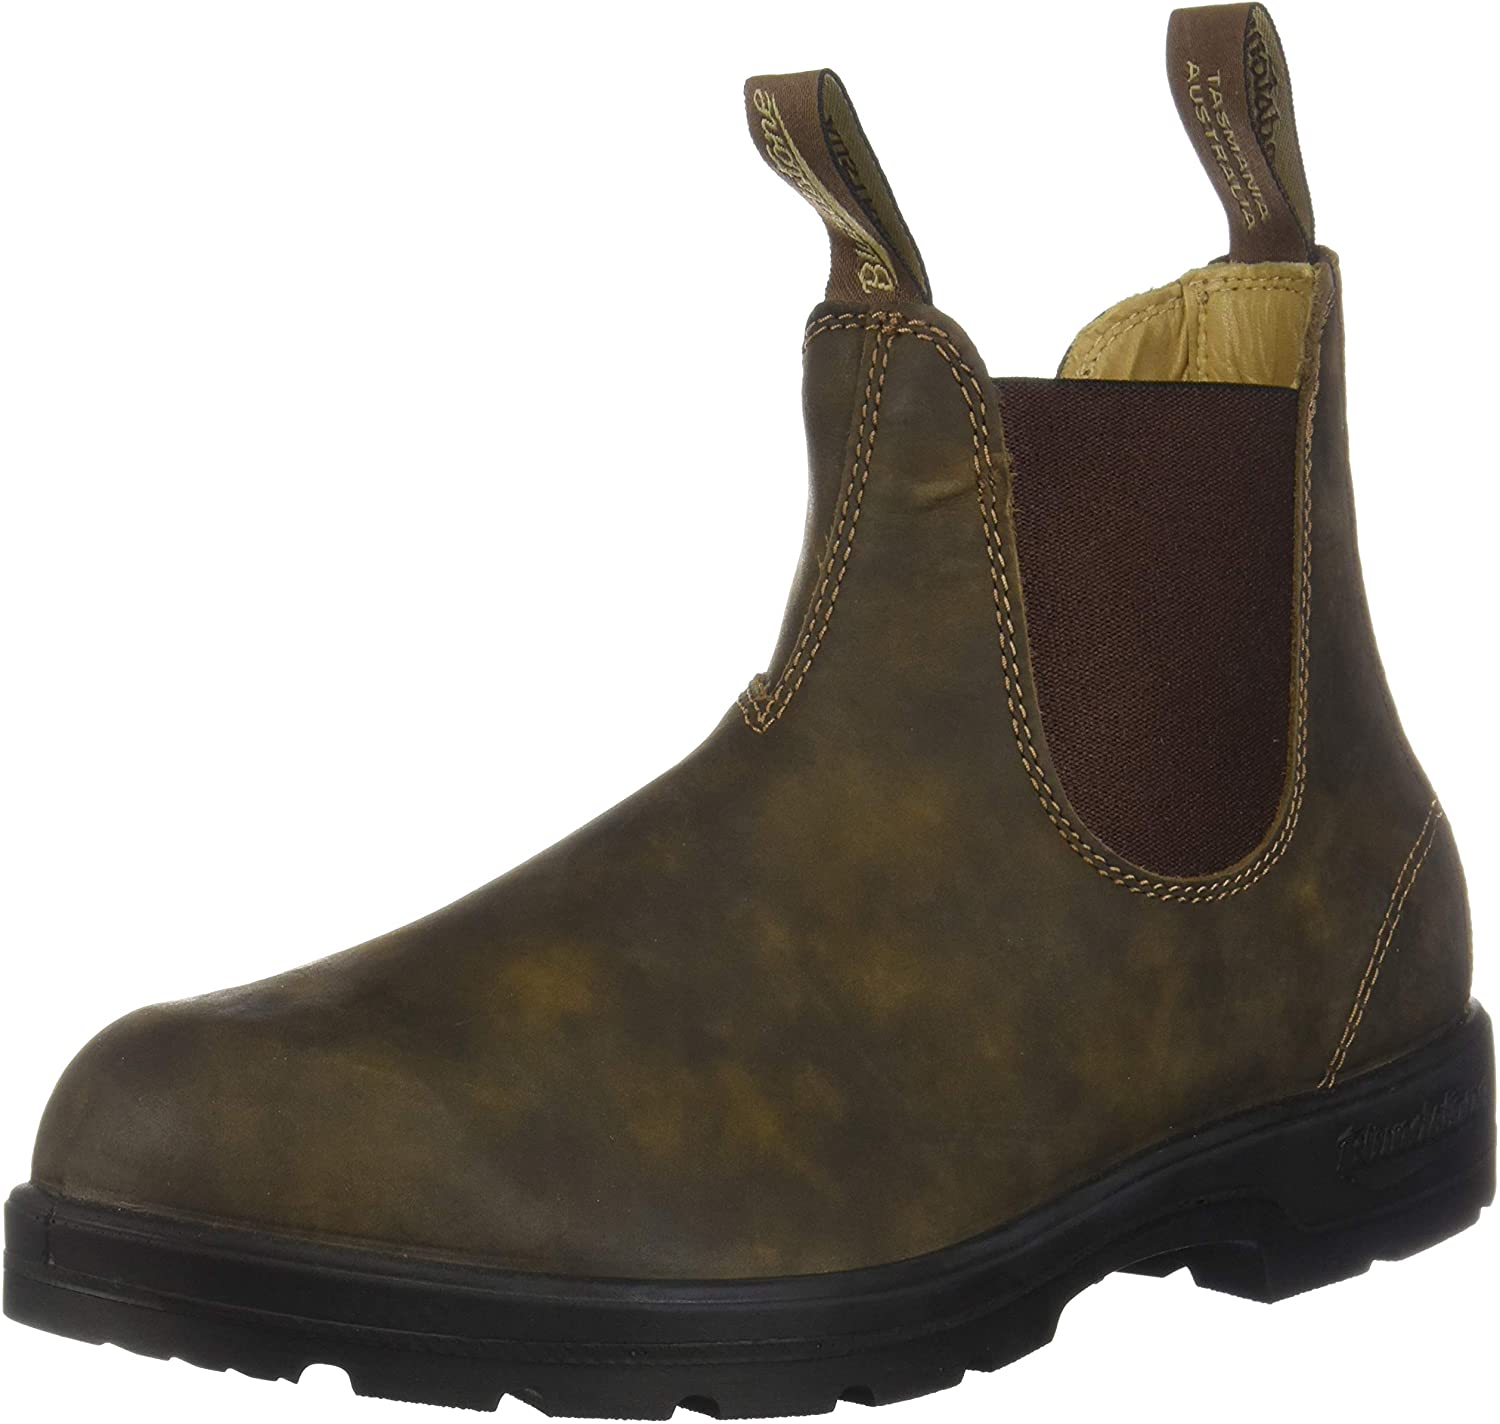 bluendstone  The Leather Lined  Classic Chelsea Boot